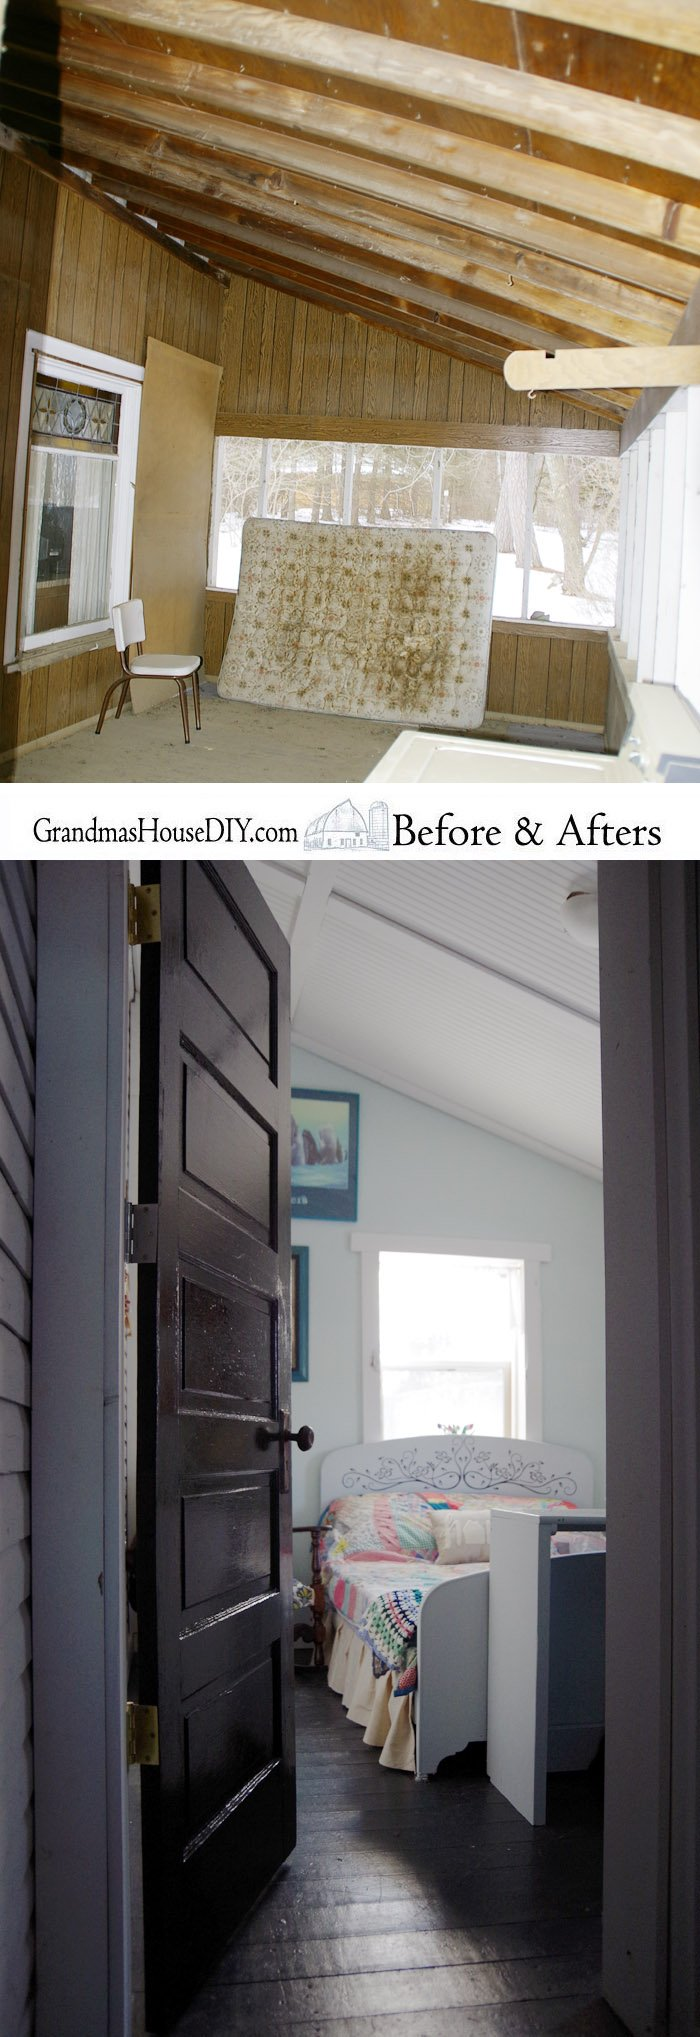 The before and afters of the entire home remodel, renovation, do it yourself of a 100 year farmhouse after fully gutting it and DIY everything!